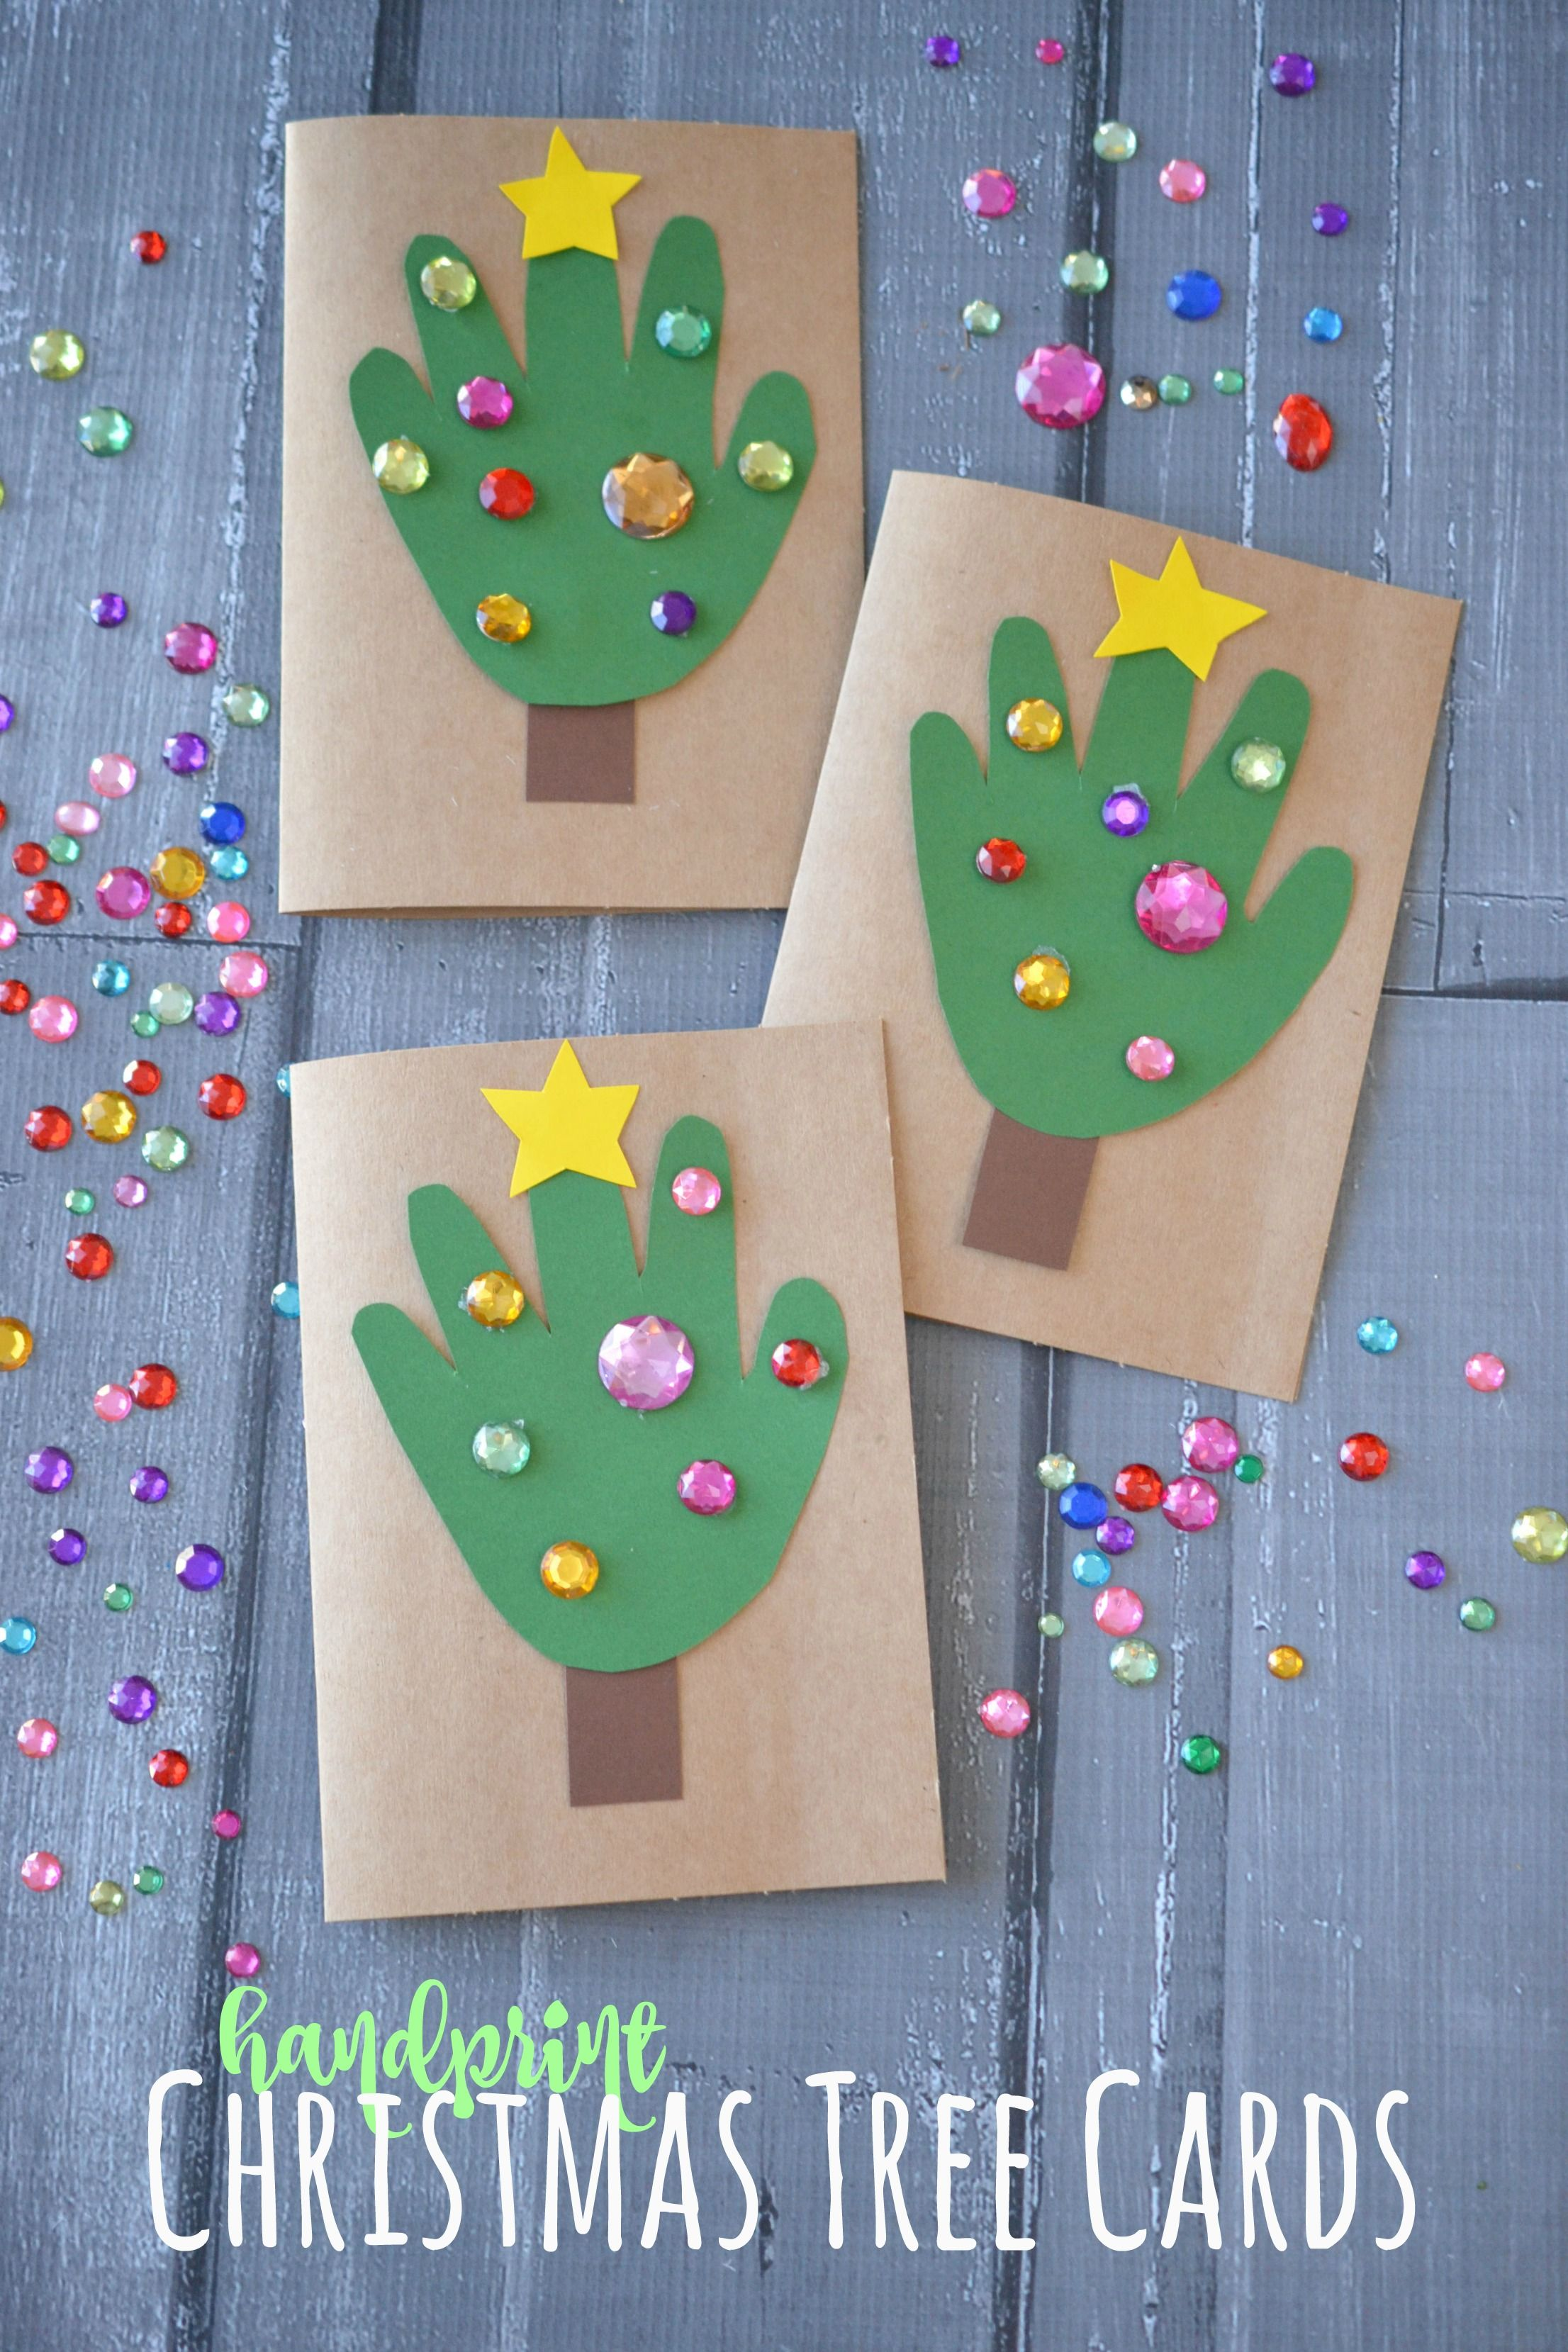 Christmas Card Craft Ideas For Kids Part - 21: DIY Handprint Christmas Tree Cards - Lovely Card For The Kids To Make (great  For A Class Activity Or Christmas Party Too!